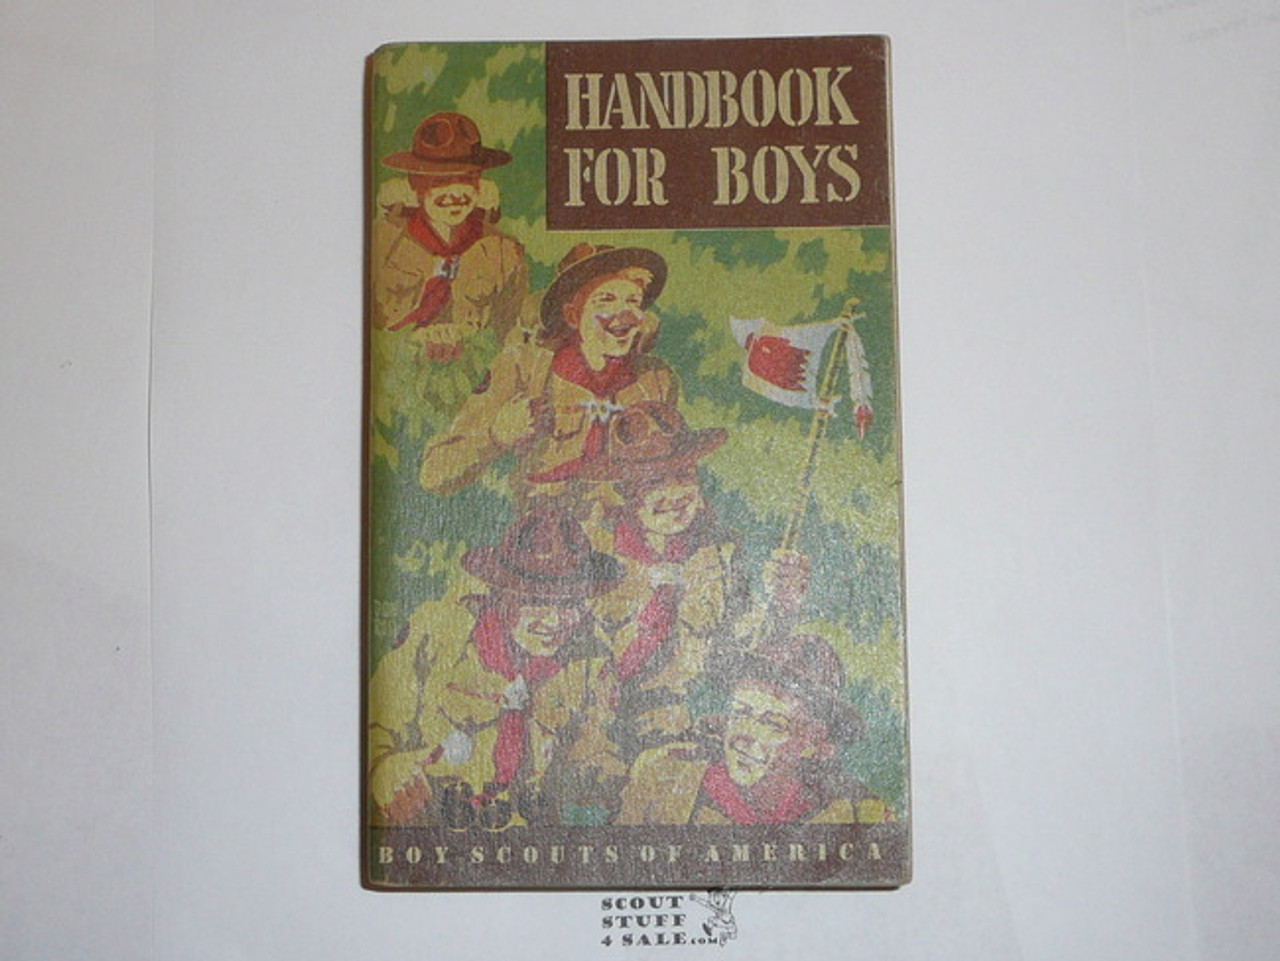 1948 Boy Scout Handbook, Fifth Edition, First Printing, Don Ross Cover Artwork, MINT condition but cover is taped at spine, eight stars on last page